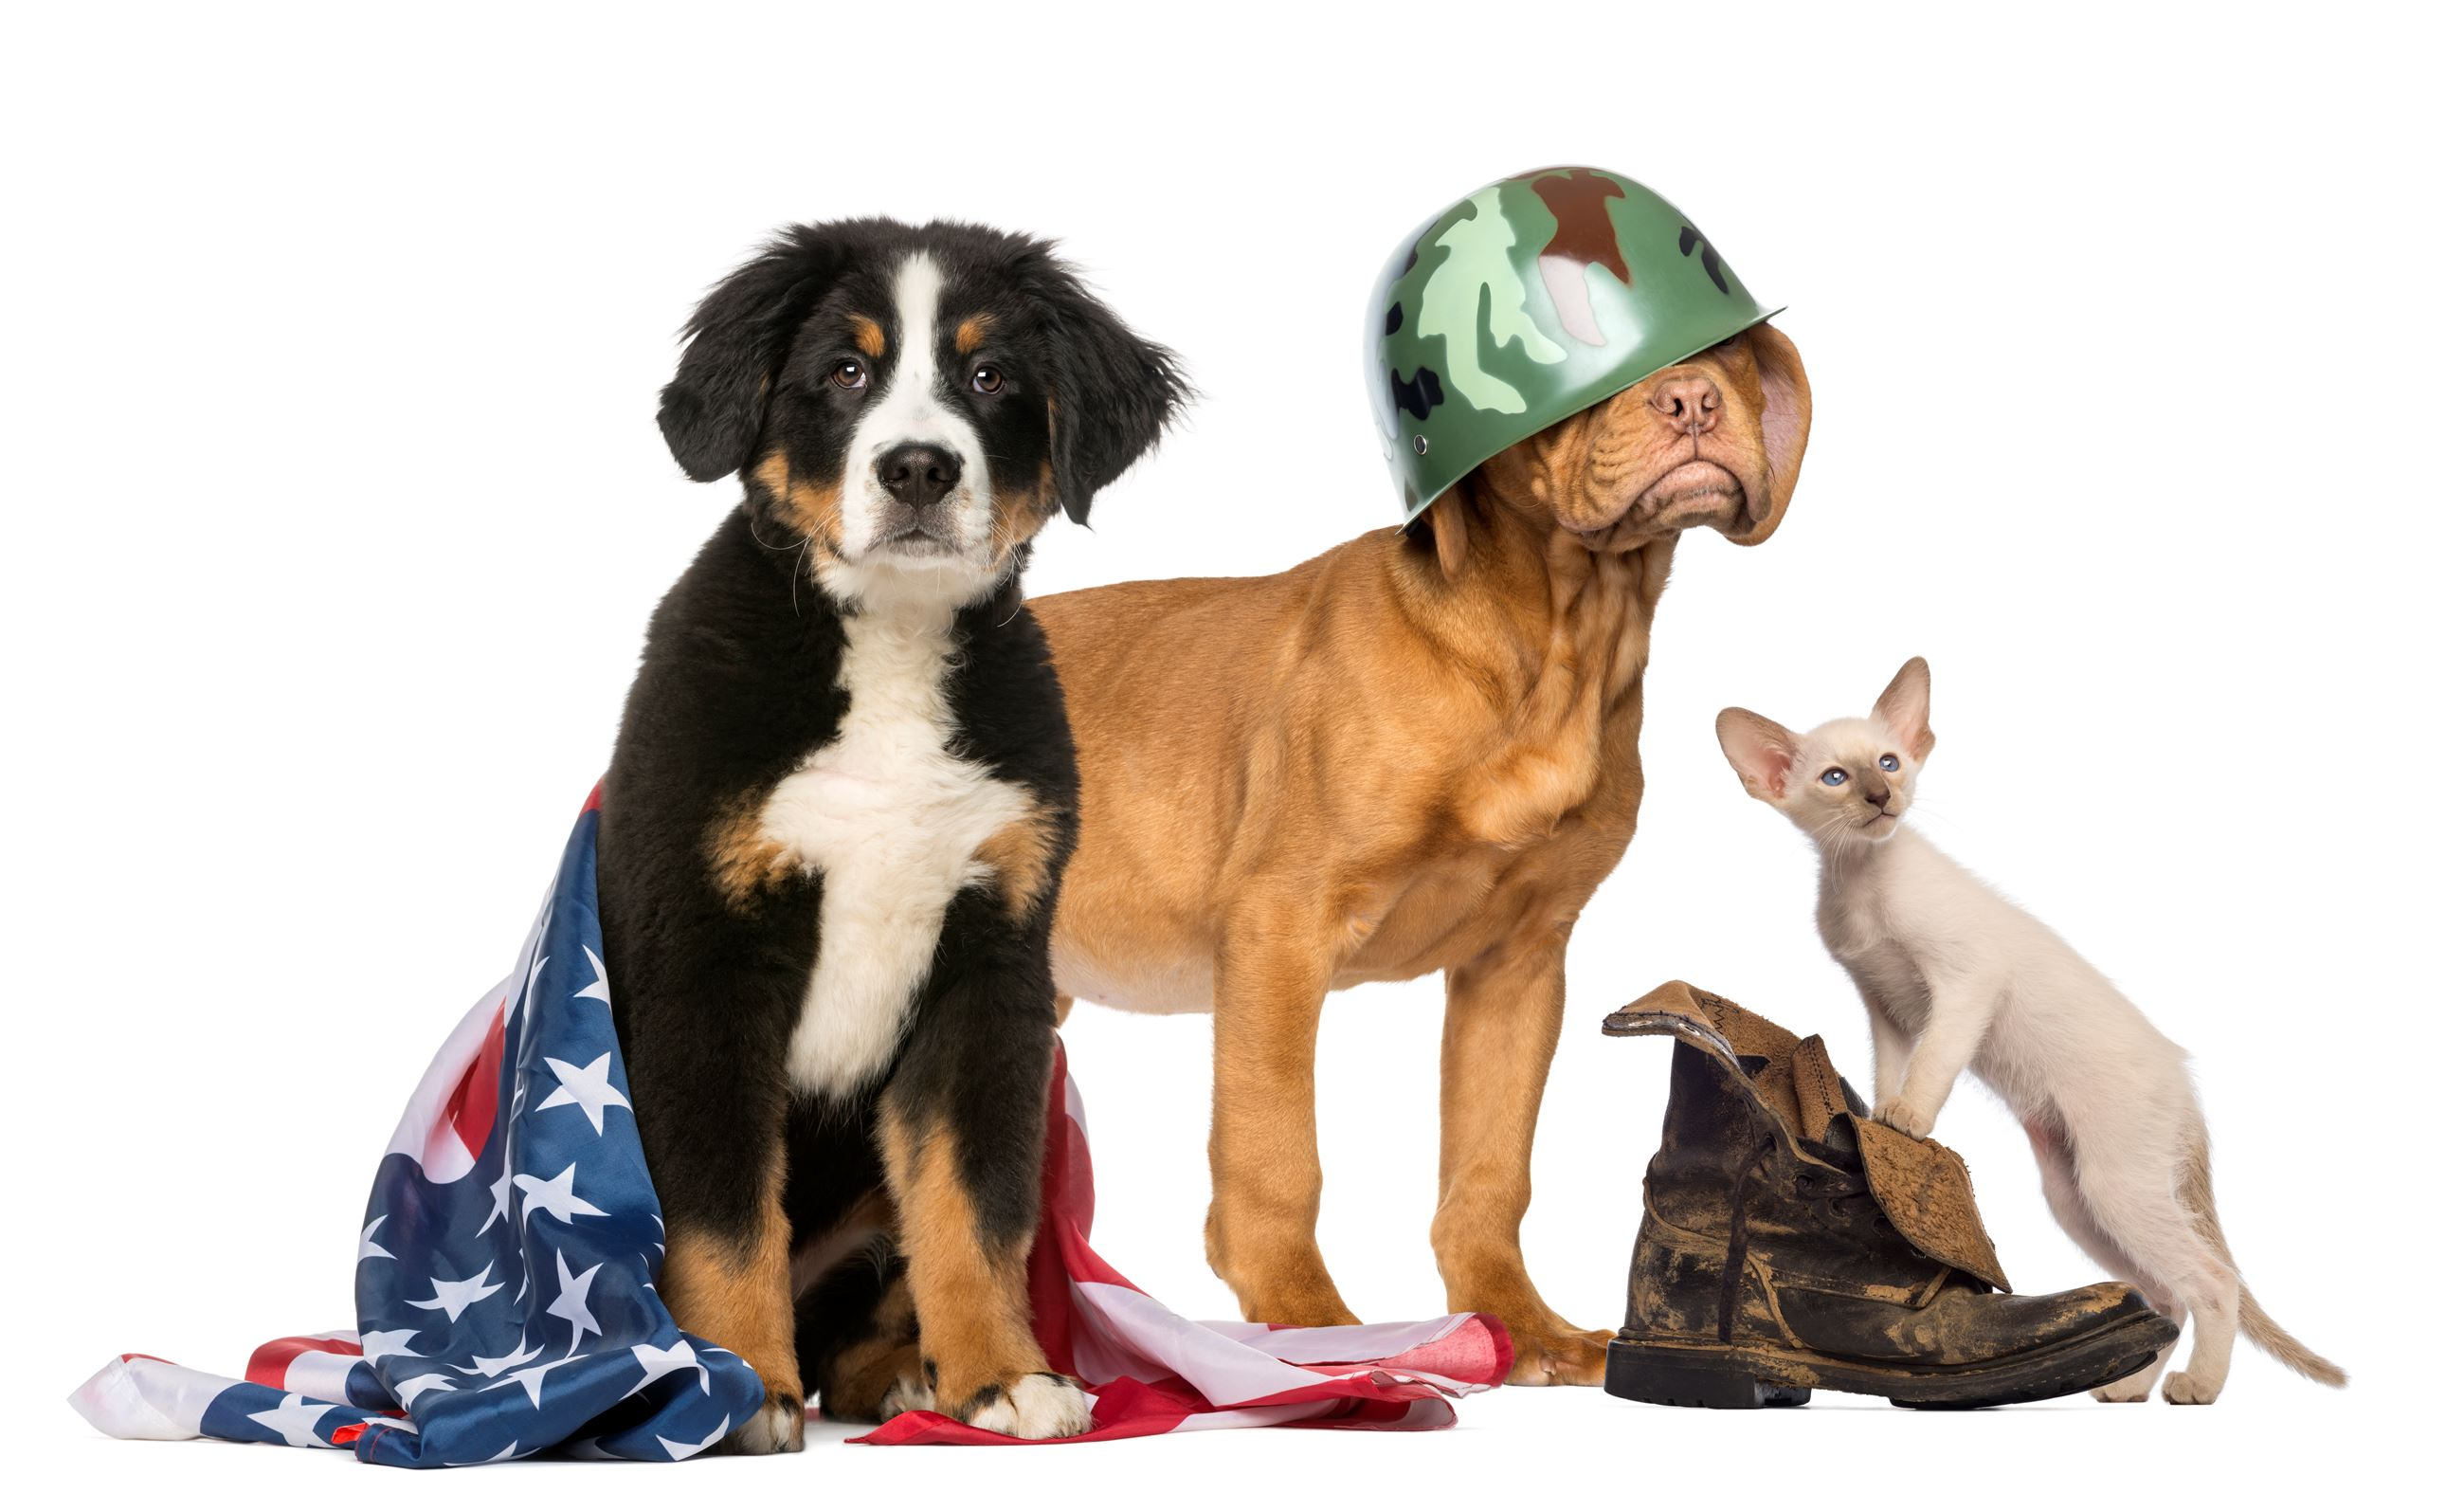 cat and dogs with military items